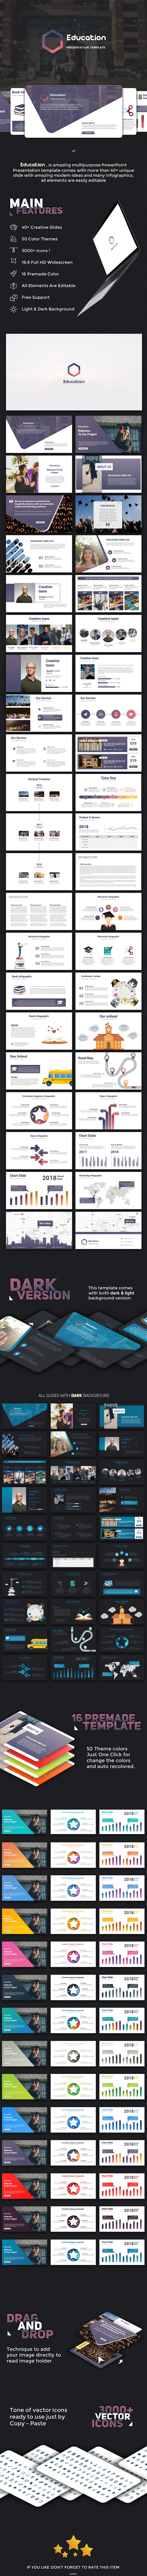 GraphicRiver Education PowerPoint Presentation Template 21072845